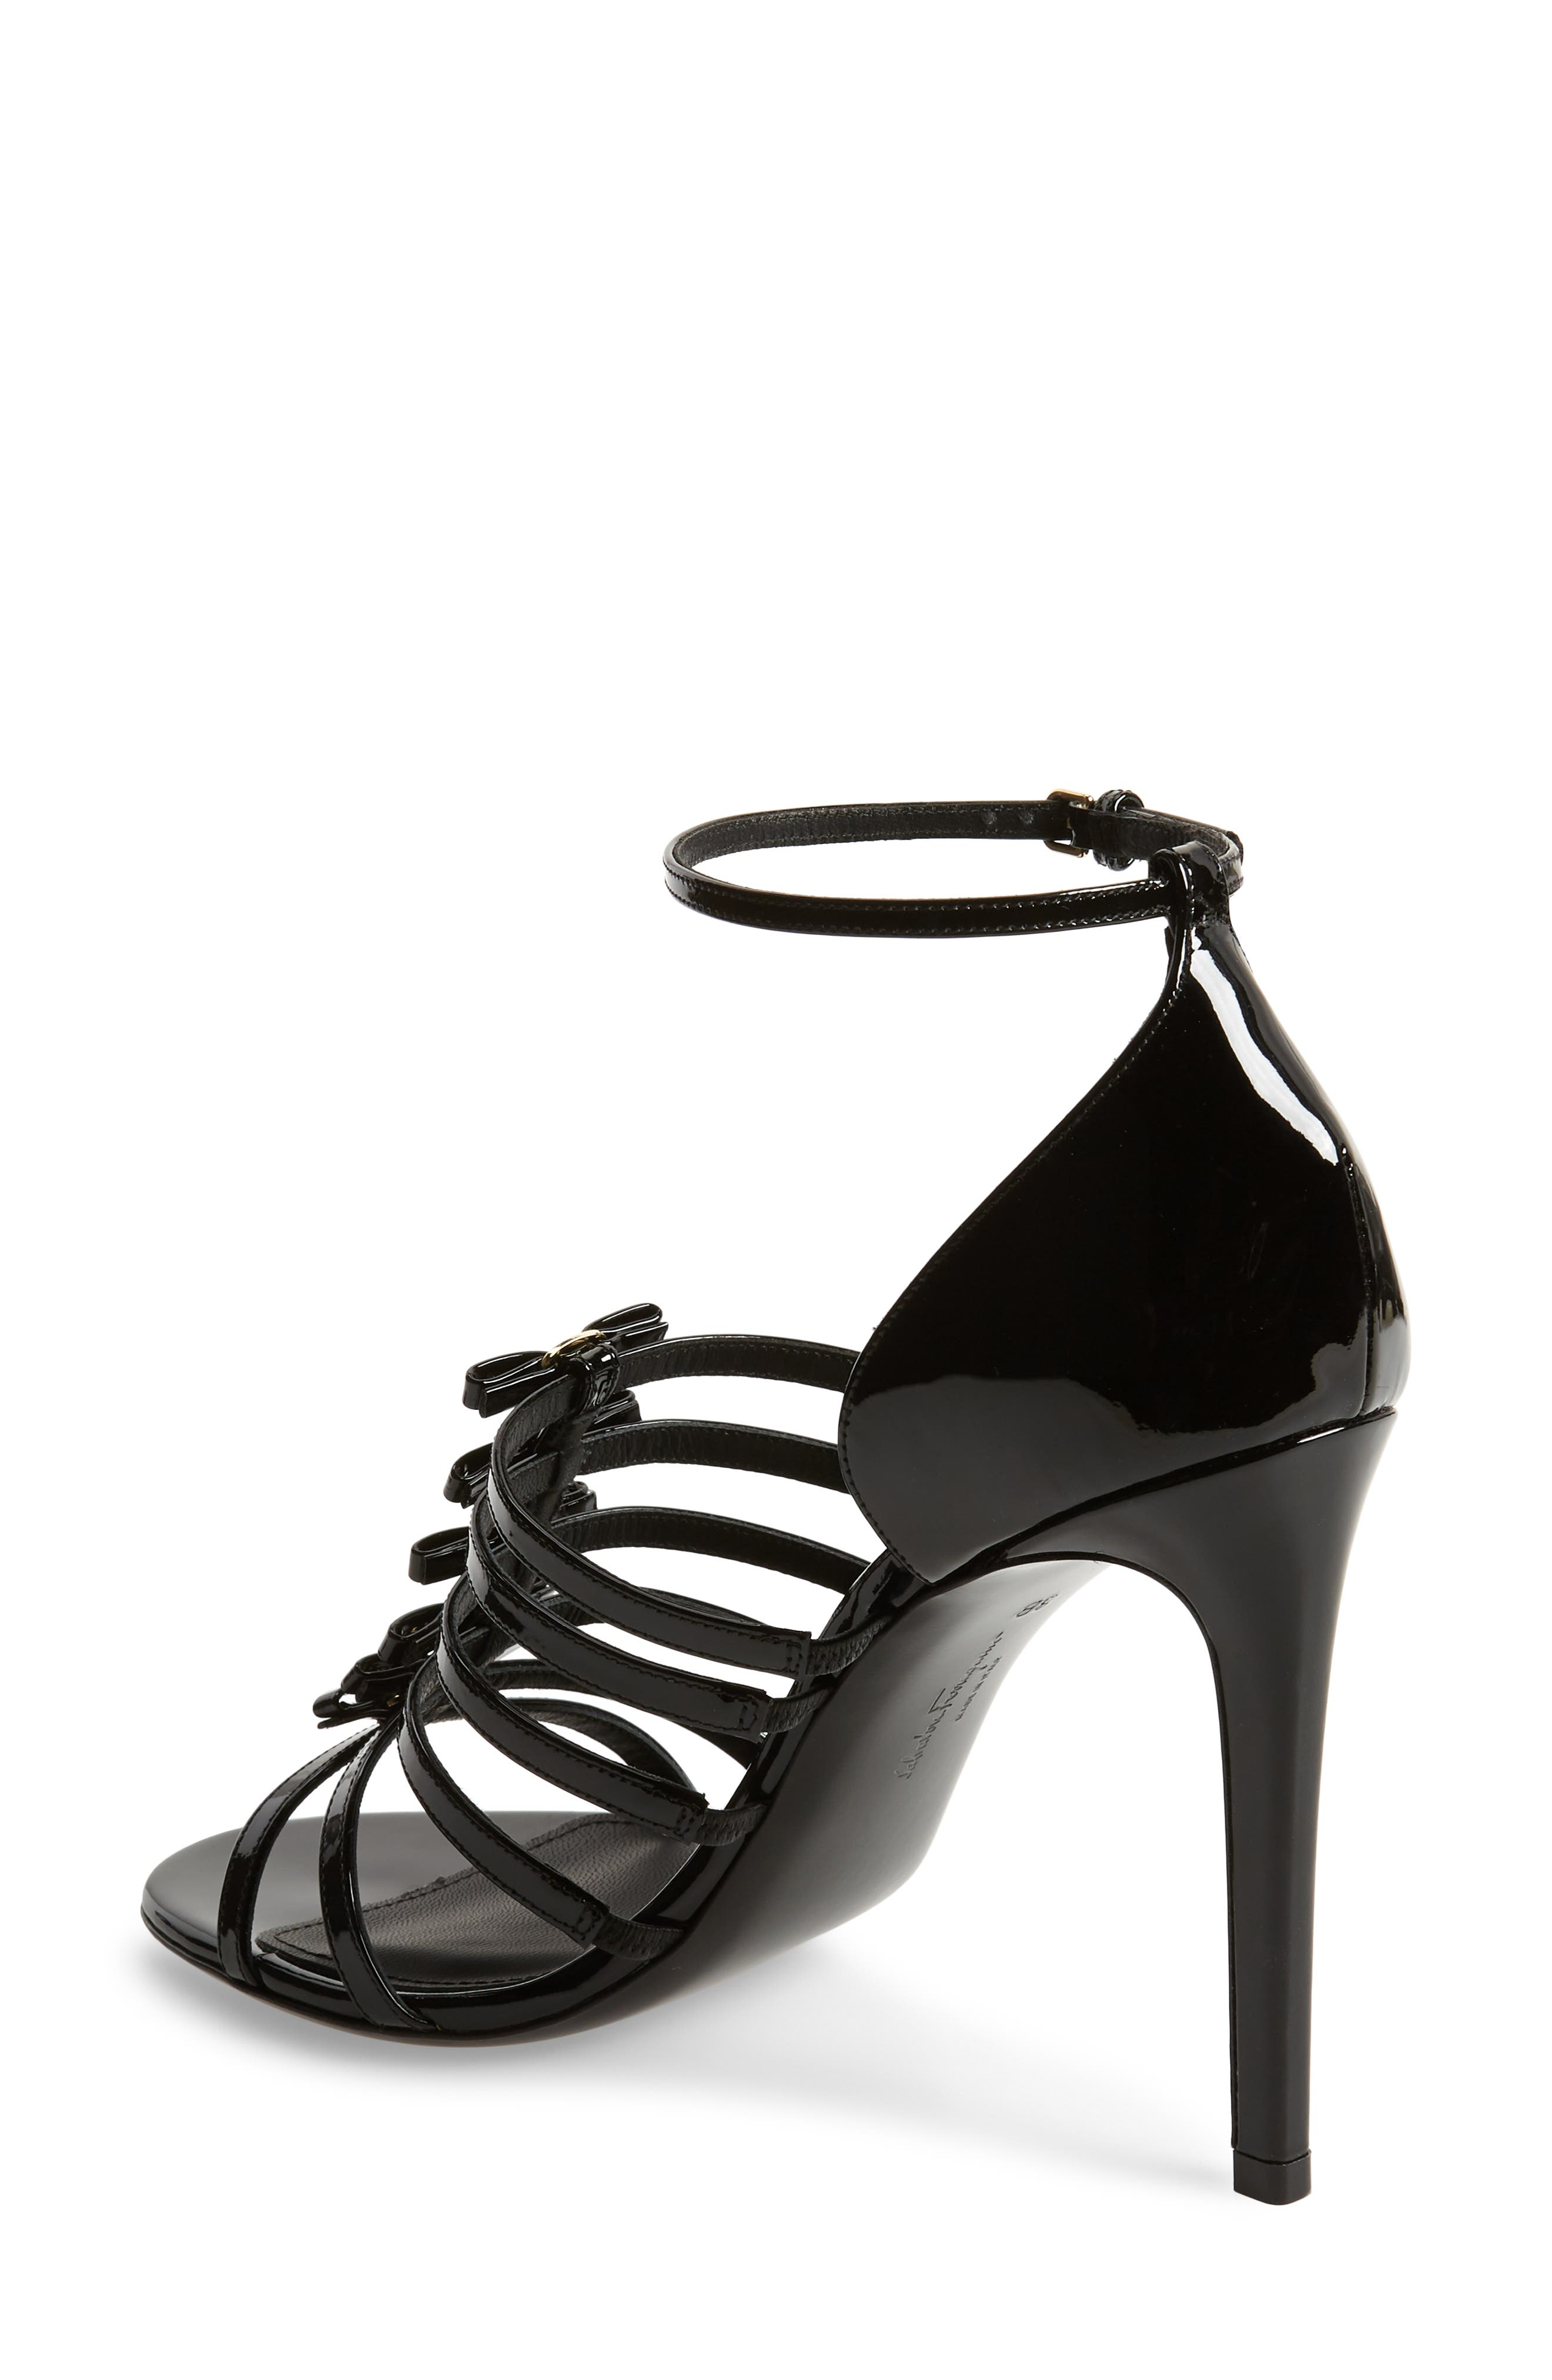 SALVATORE FERRAGAMO,                             Jesolo Cage Sandal,                             Alternate thumbnail 2, color,                             BLACK